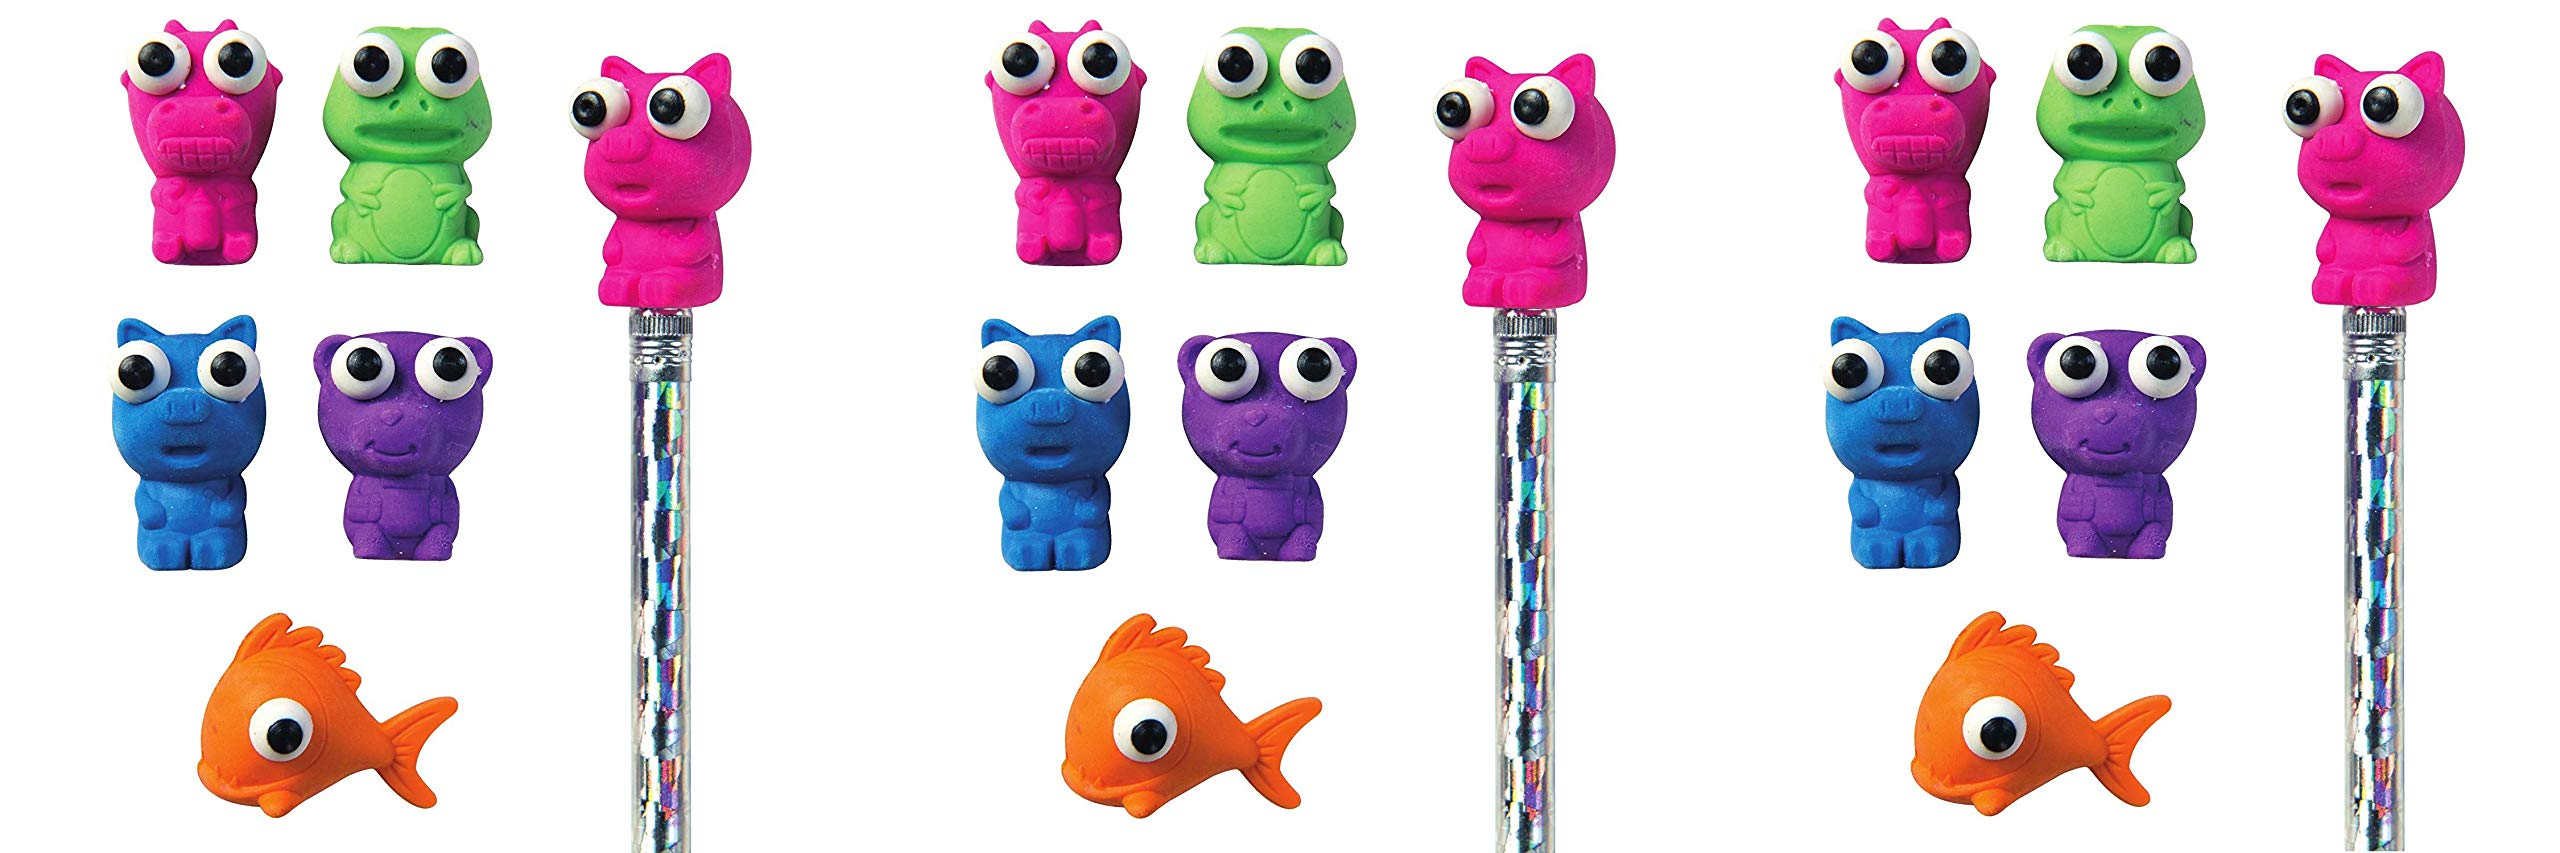 Raymond Geddes Here's Looking at You Eraser Pencil Toppers, Set of 50 (69005) (Тhree Pаck, Assorted) by Raymond Geddes (Image #1)